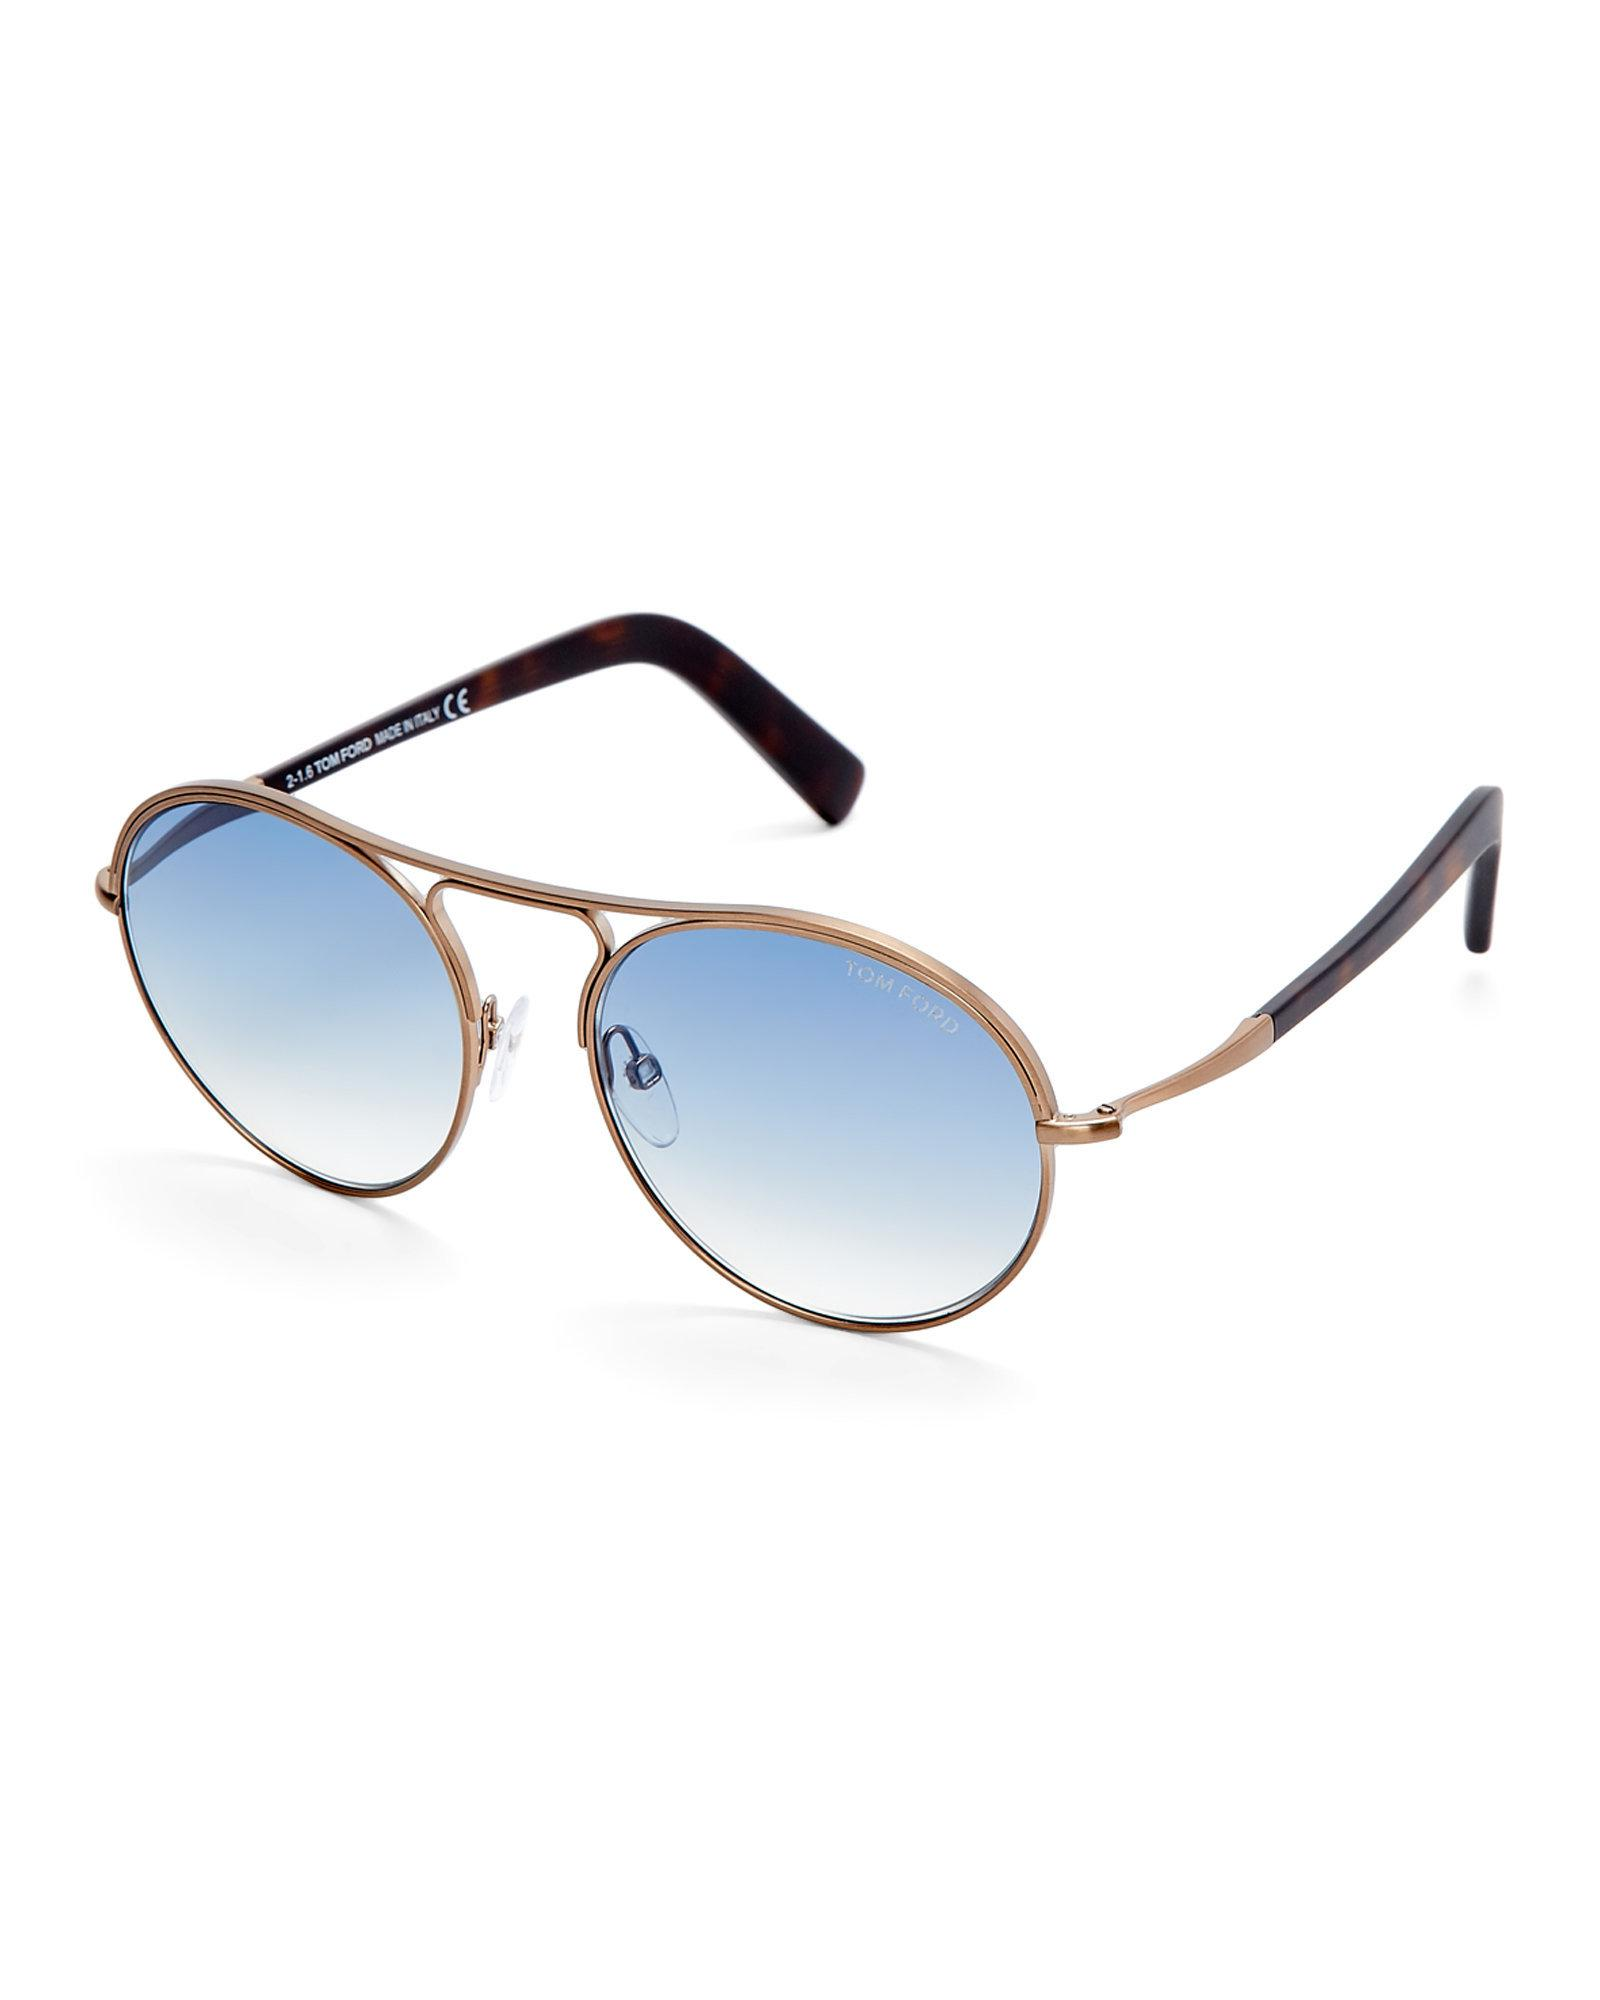 2d835c1f60 Lyst - Tom Ford Tf449 Jessie Round Sunglasses in Blue